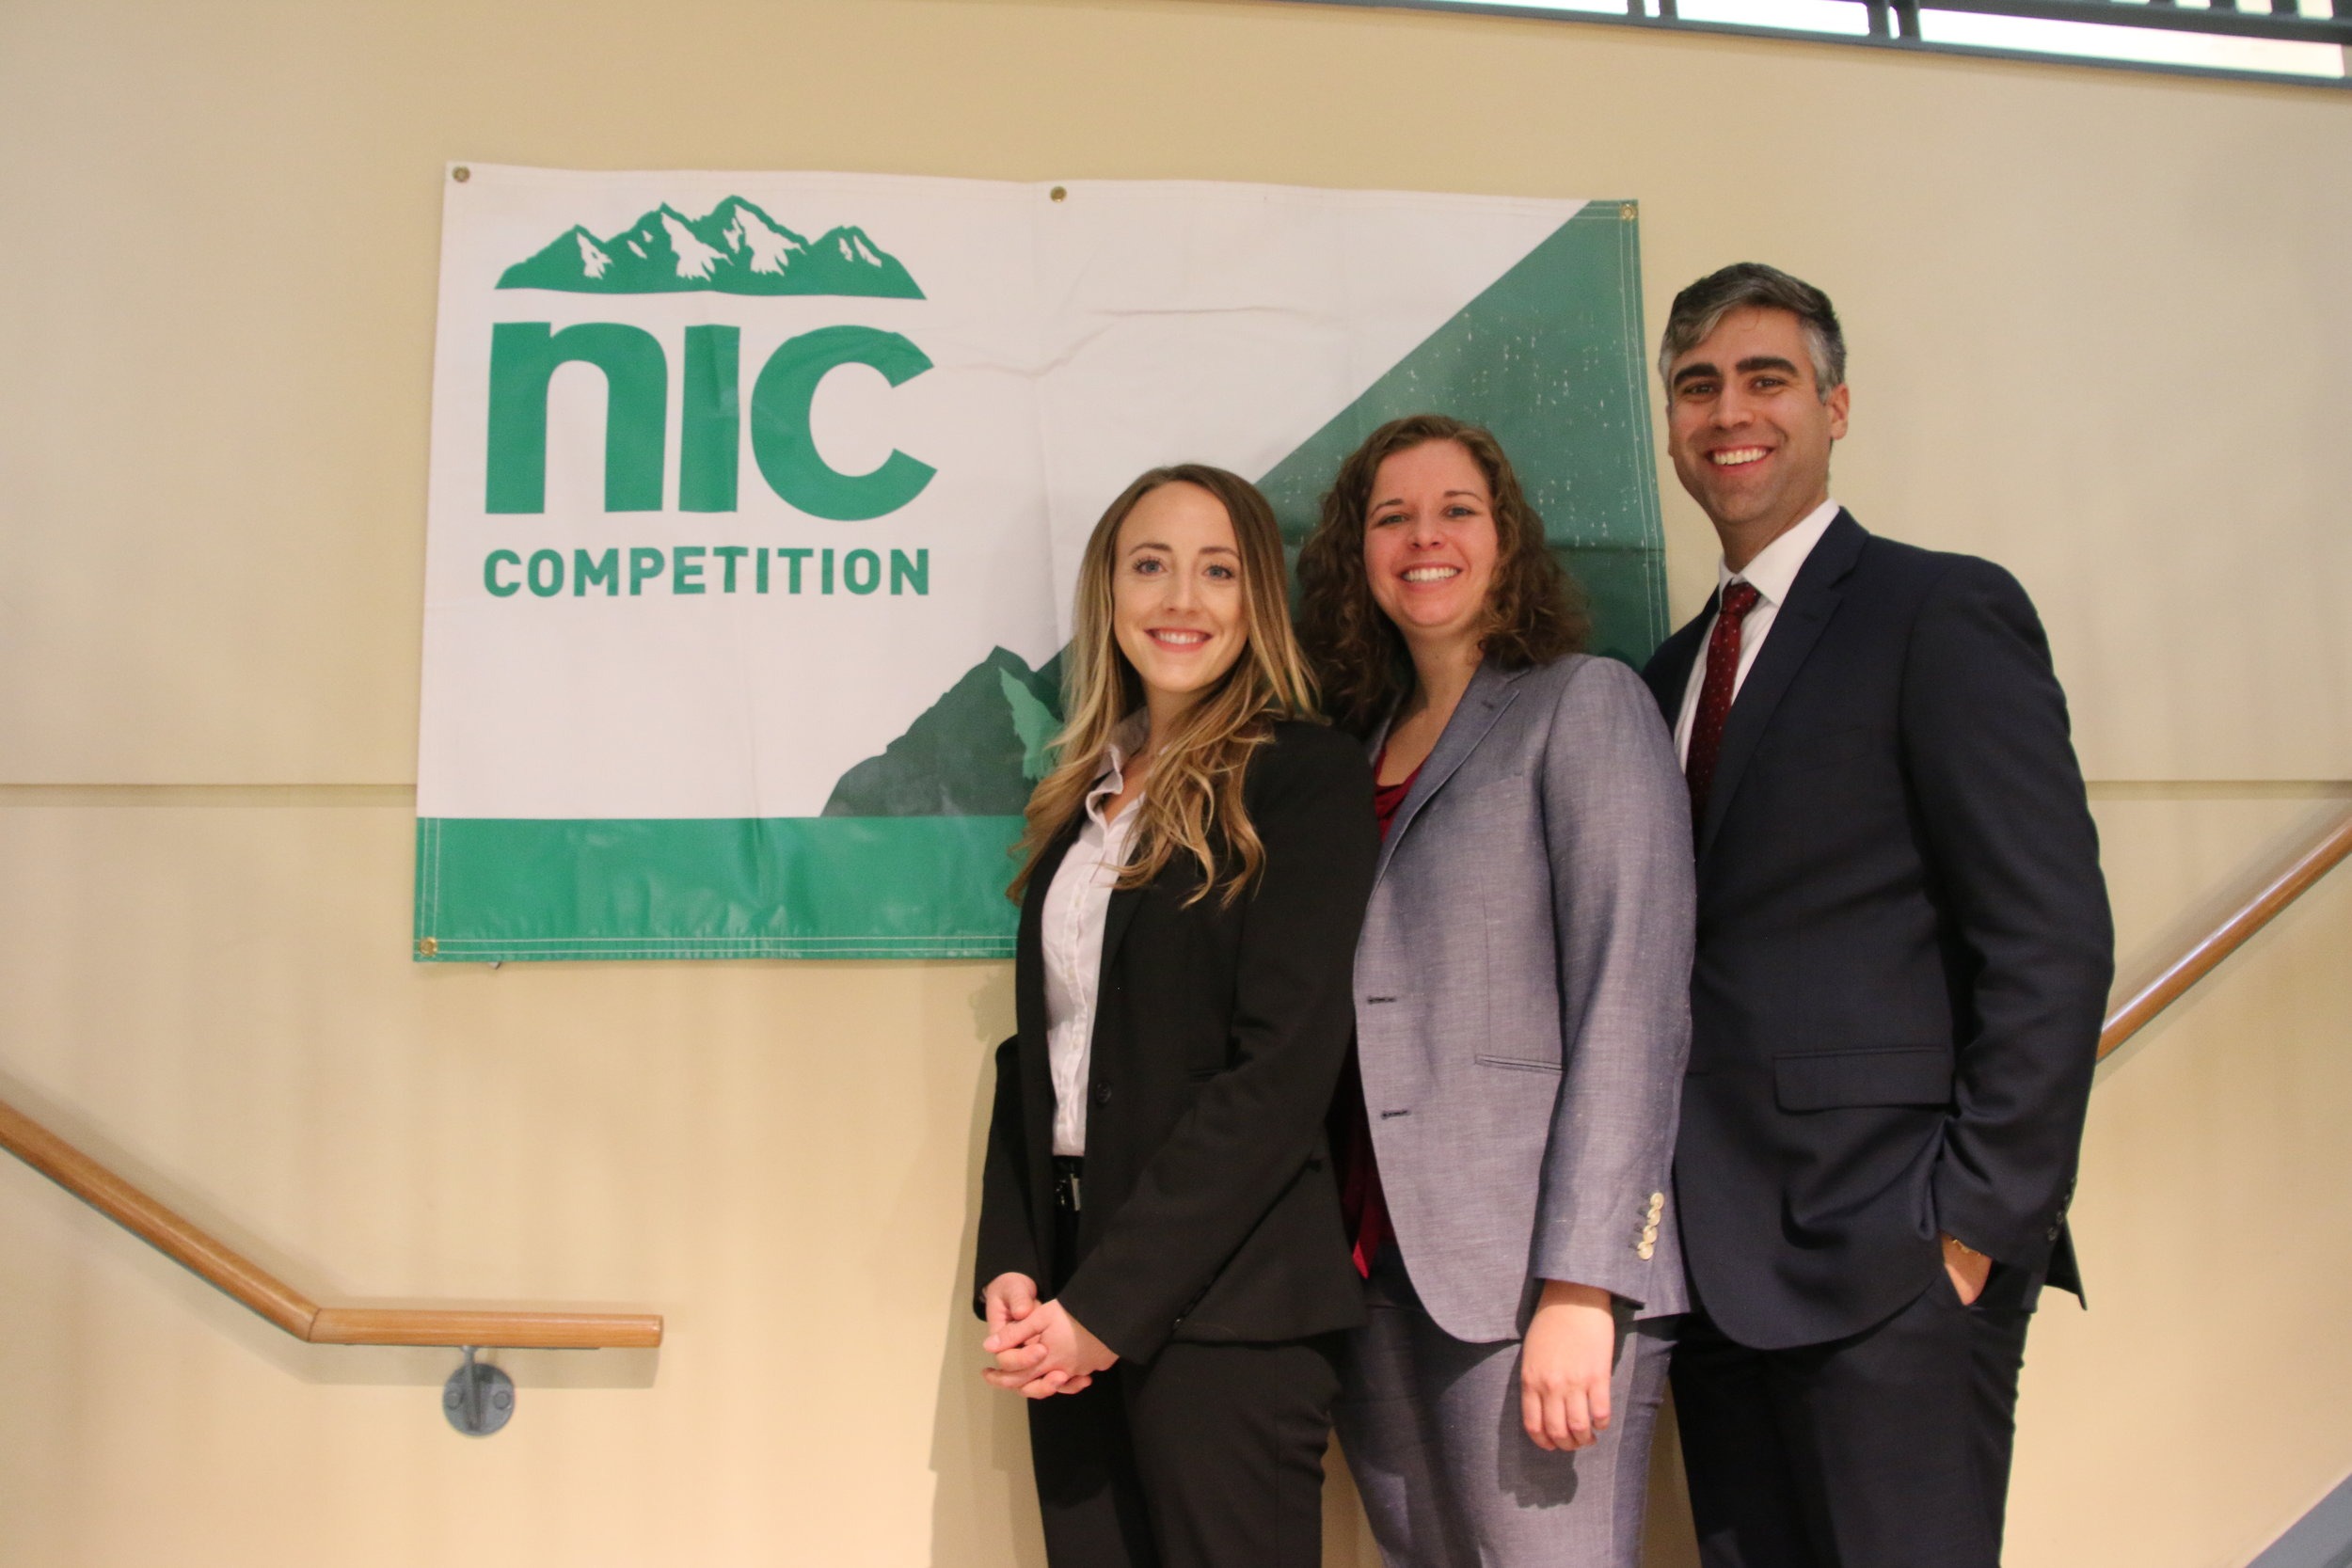 Join us - Ready to take the next step towards competing in NICC 2020?